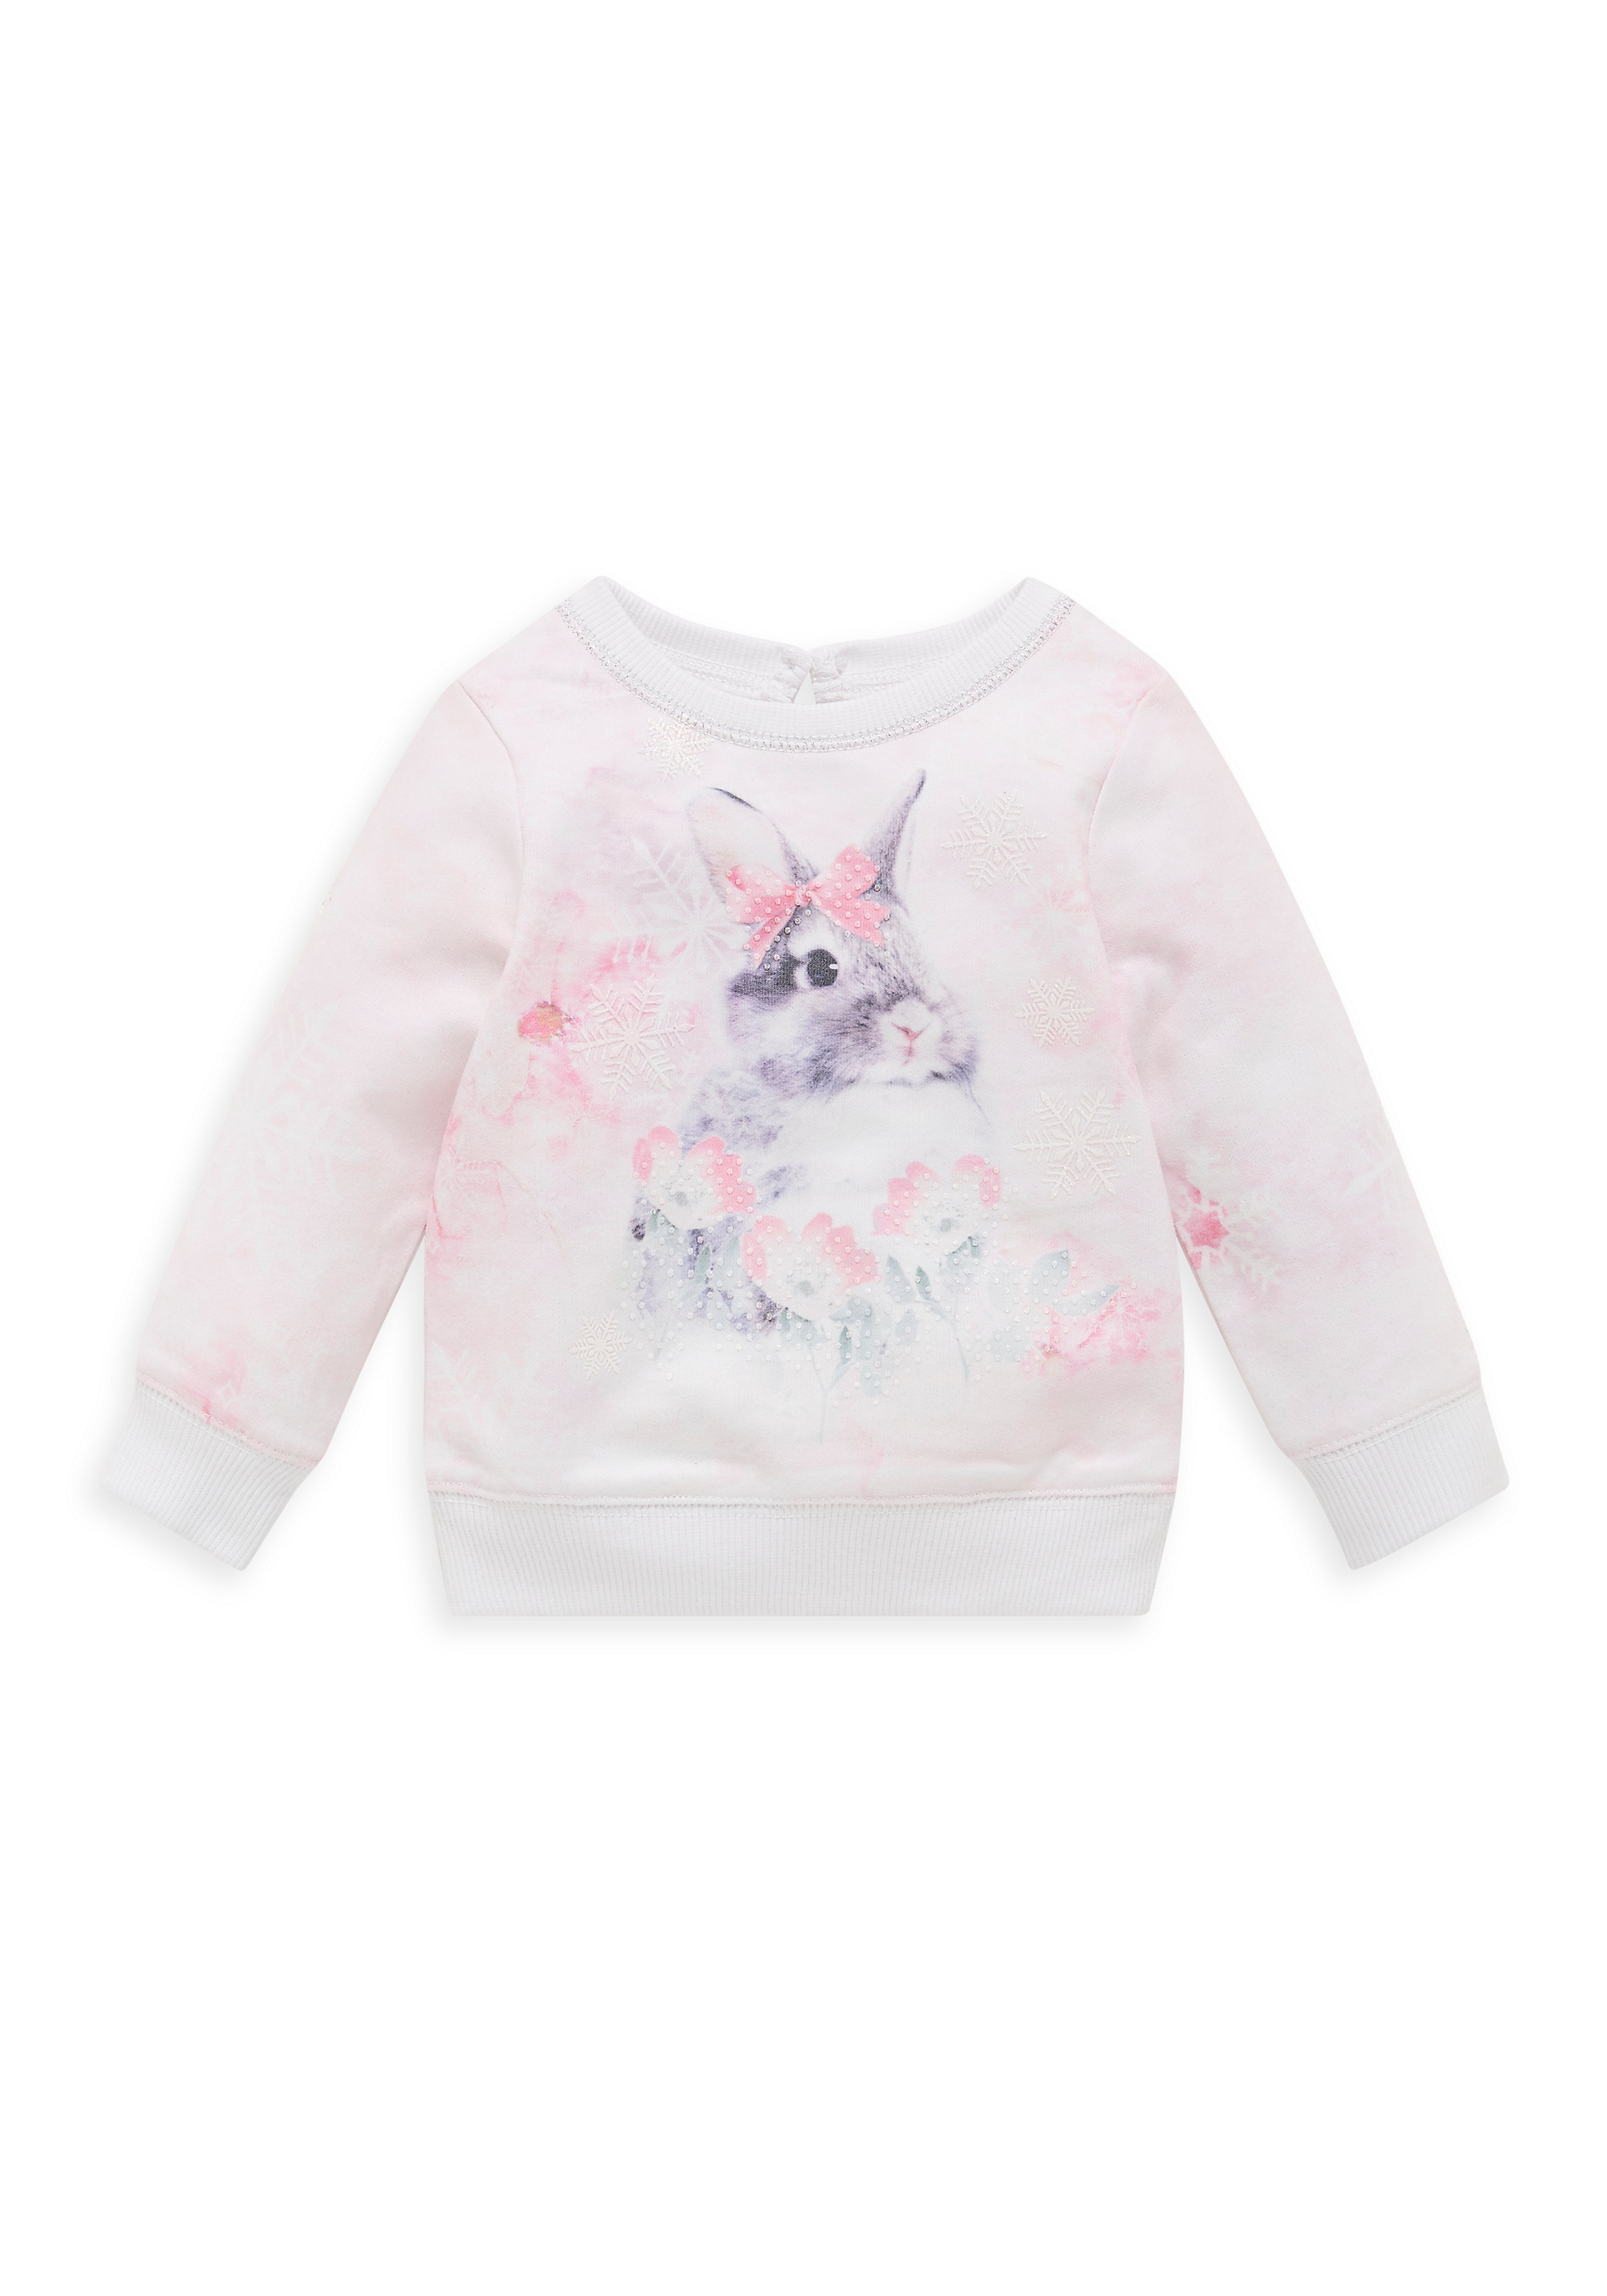 Mothercare   Girls Photographic Bunny Top - Pink